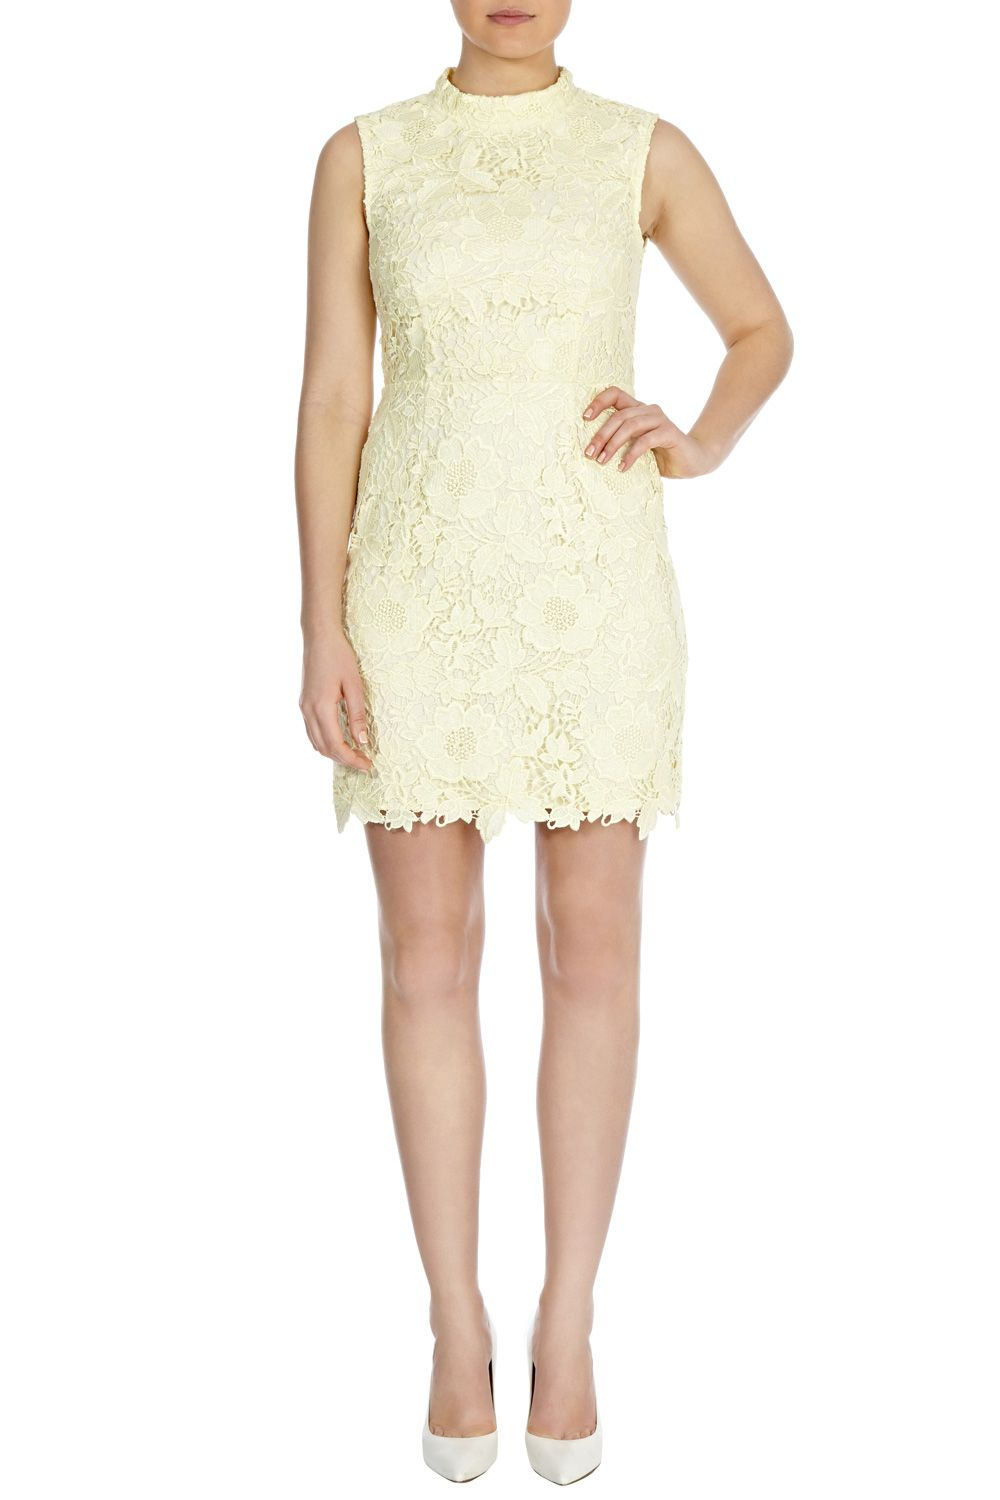 Miley lace dress